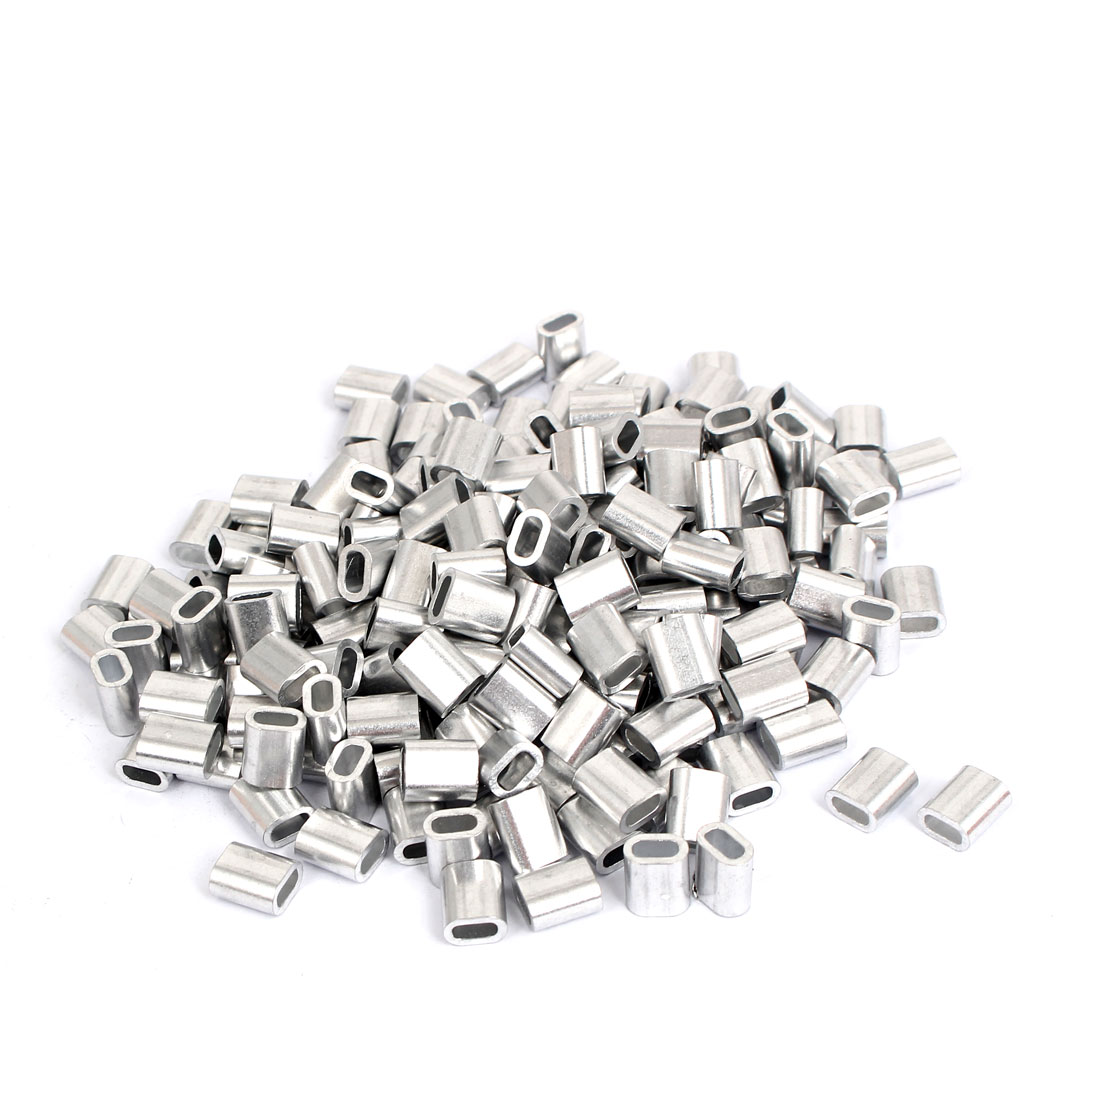 M2.5 Aluminum Cable Sleeves Wire Rope Stops Ferrules 200pcs